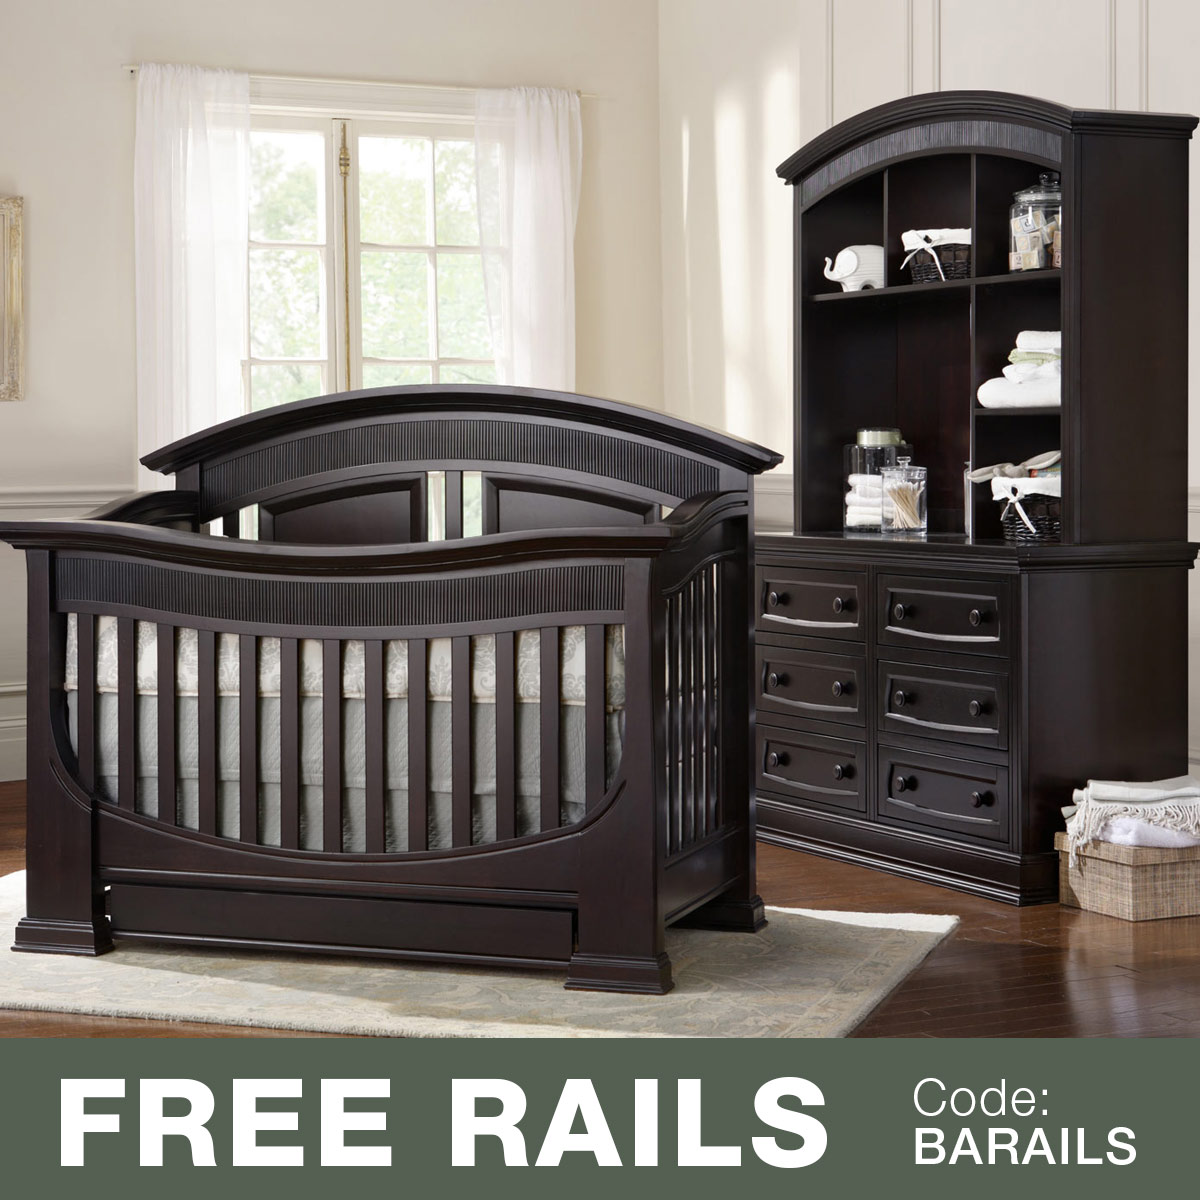 Amazing brown dresser,awesome brown dresser,best brown dresser,cozy brown dresser,original brown dresser, resolution: simply baby furniture